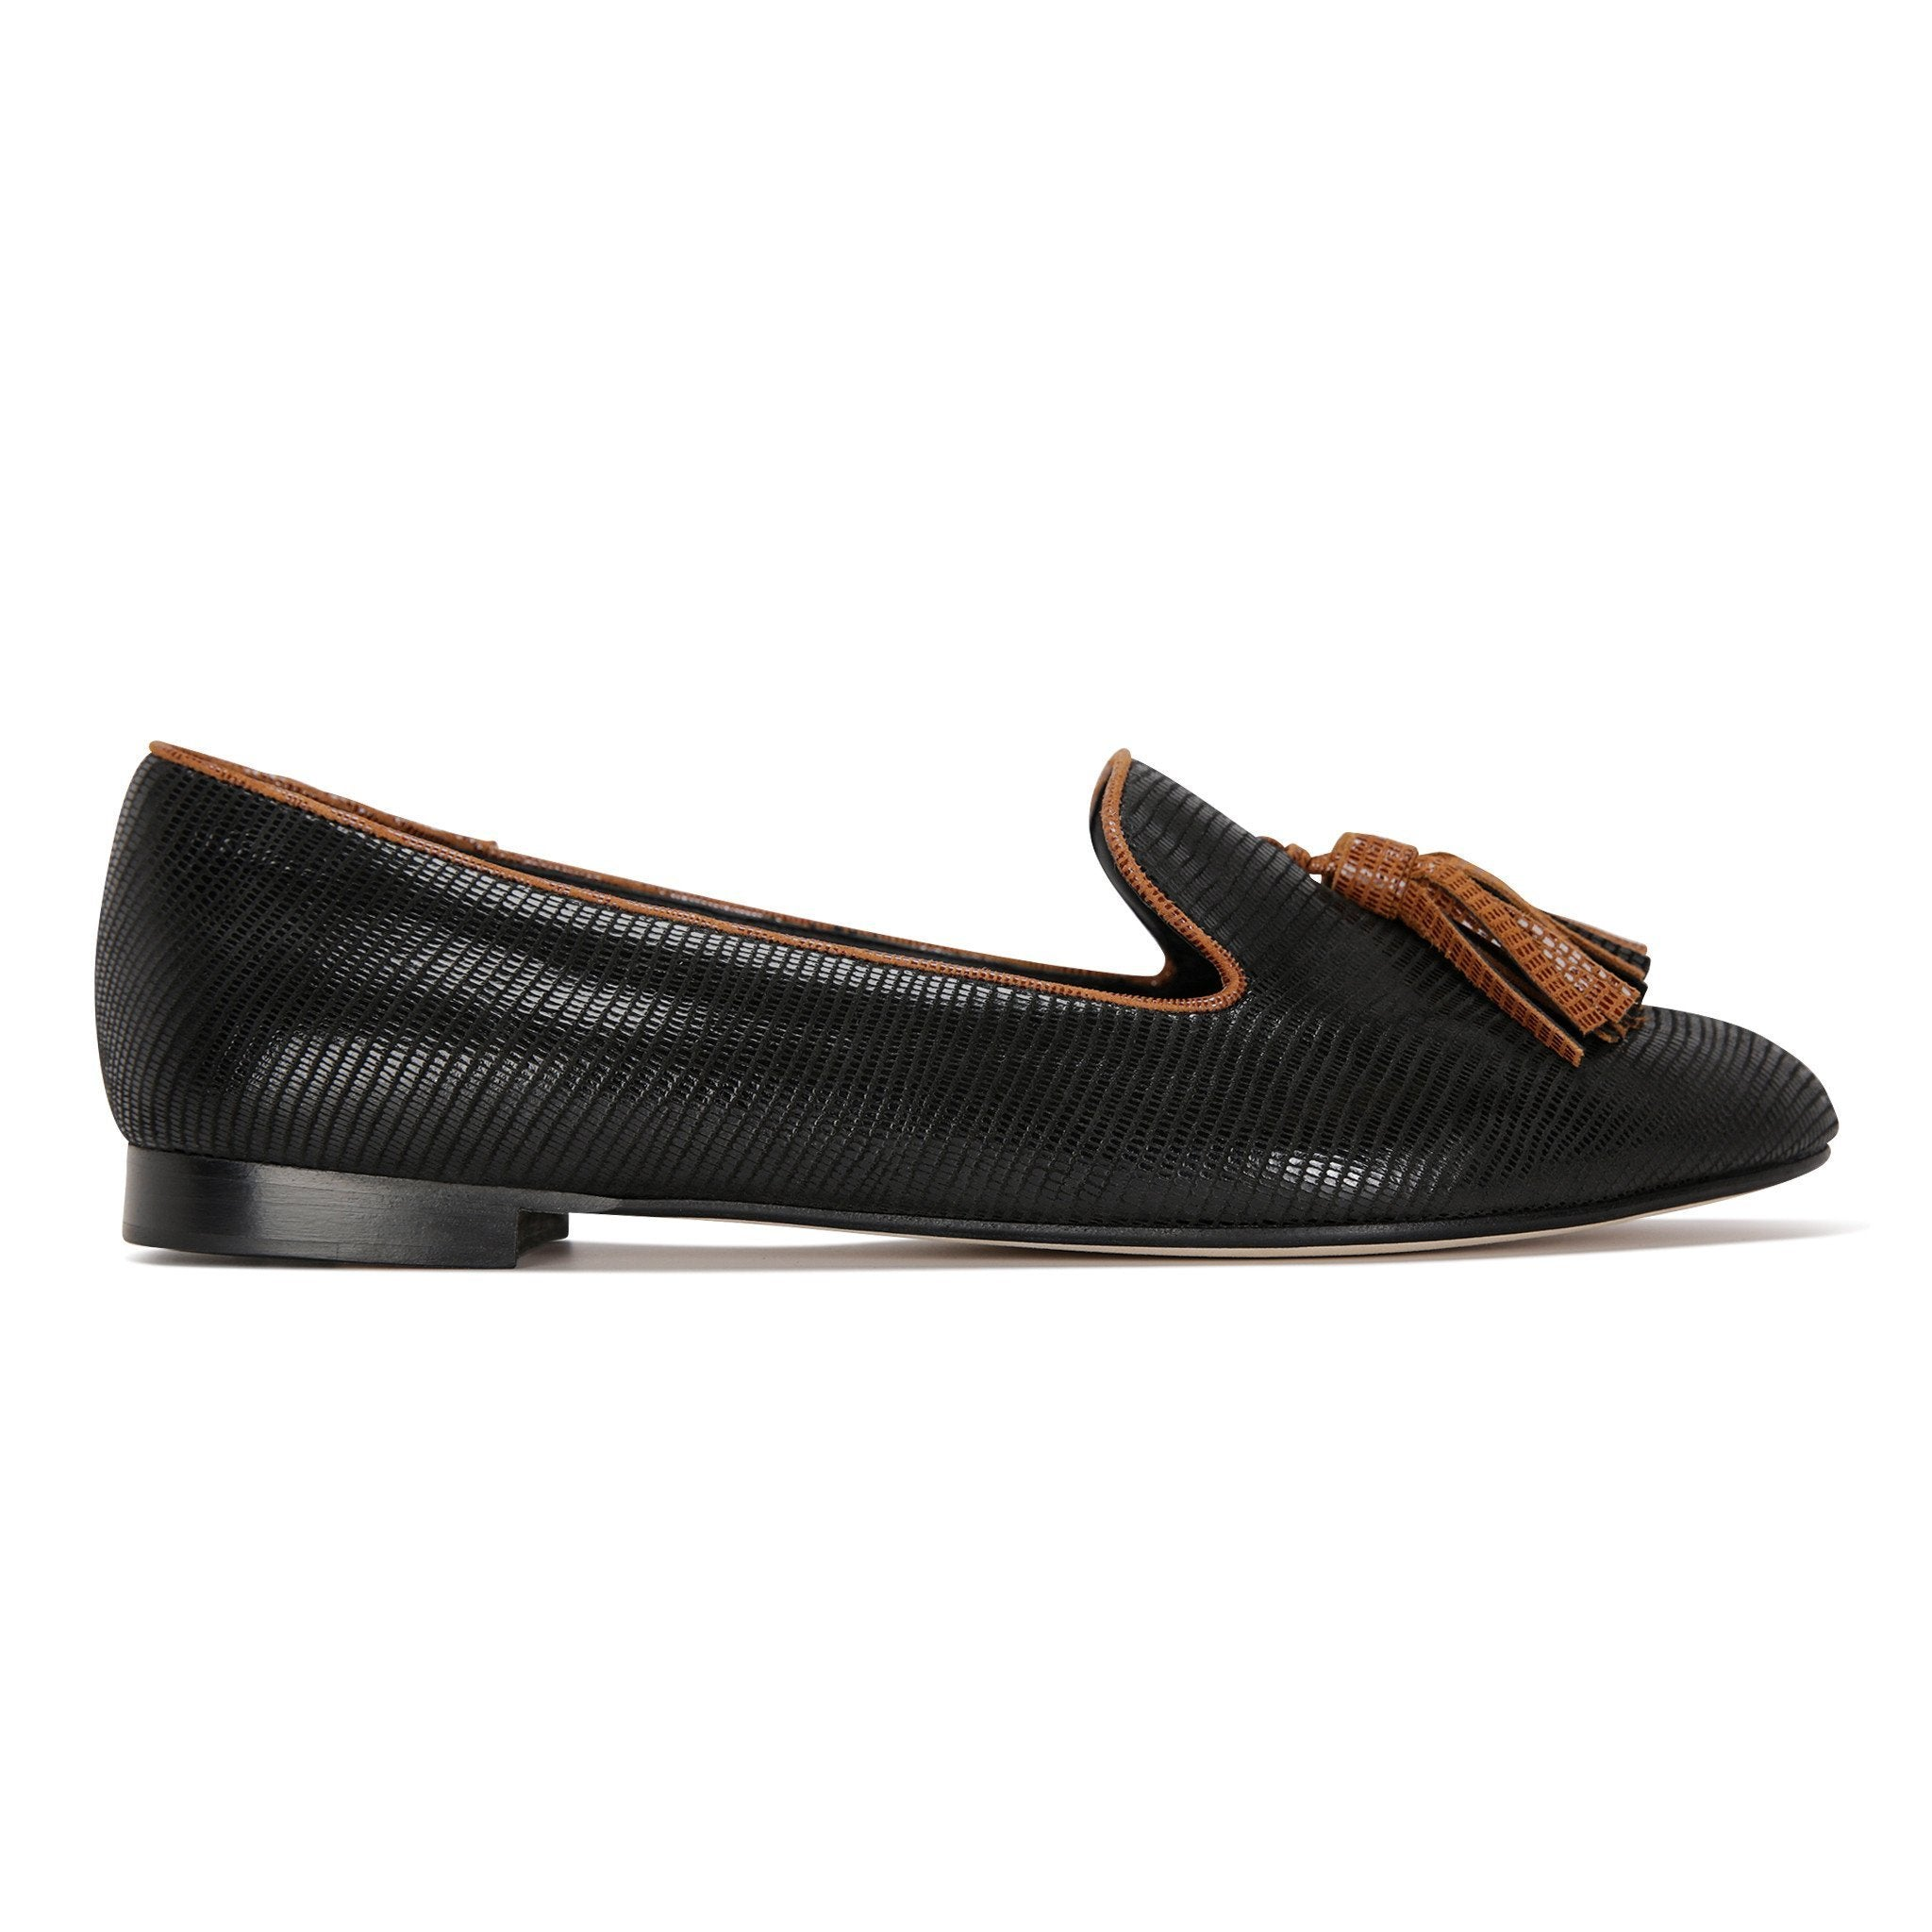 PARMA - Varanus Nero + Dune, VIAJIYU - Women's Hand Made Sustainable Luxury Shoes. Made in Italy. Made to Order.